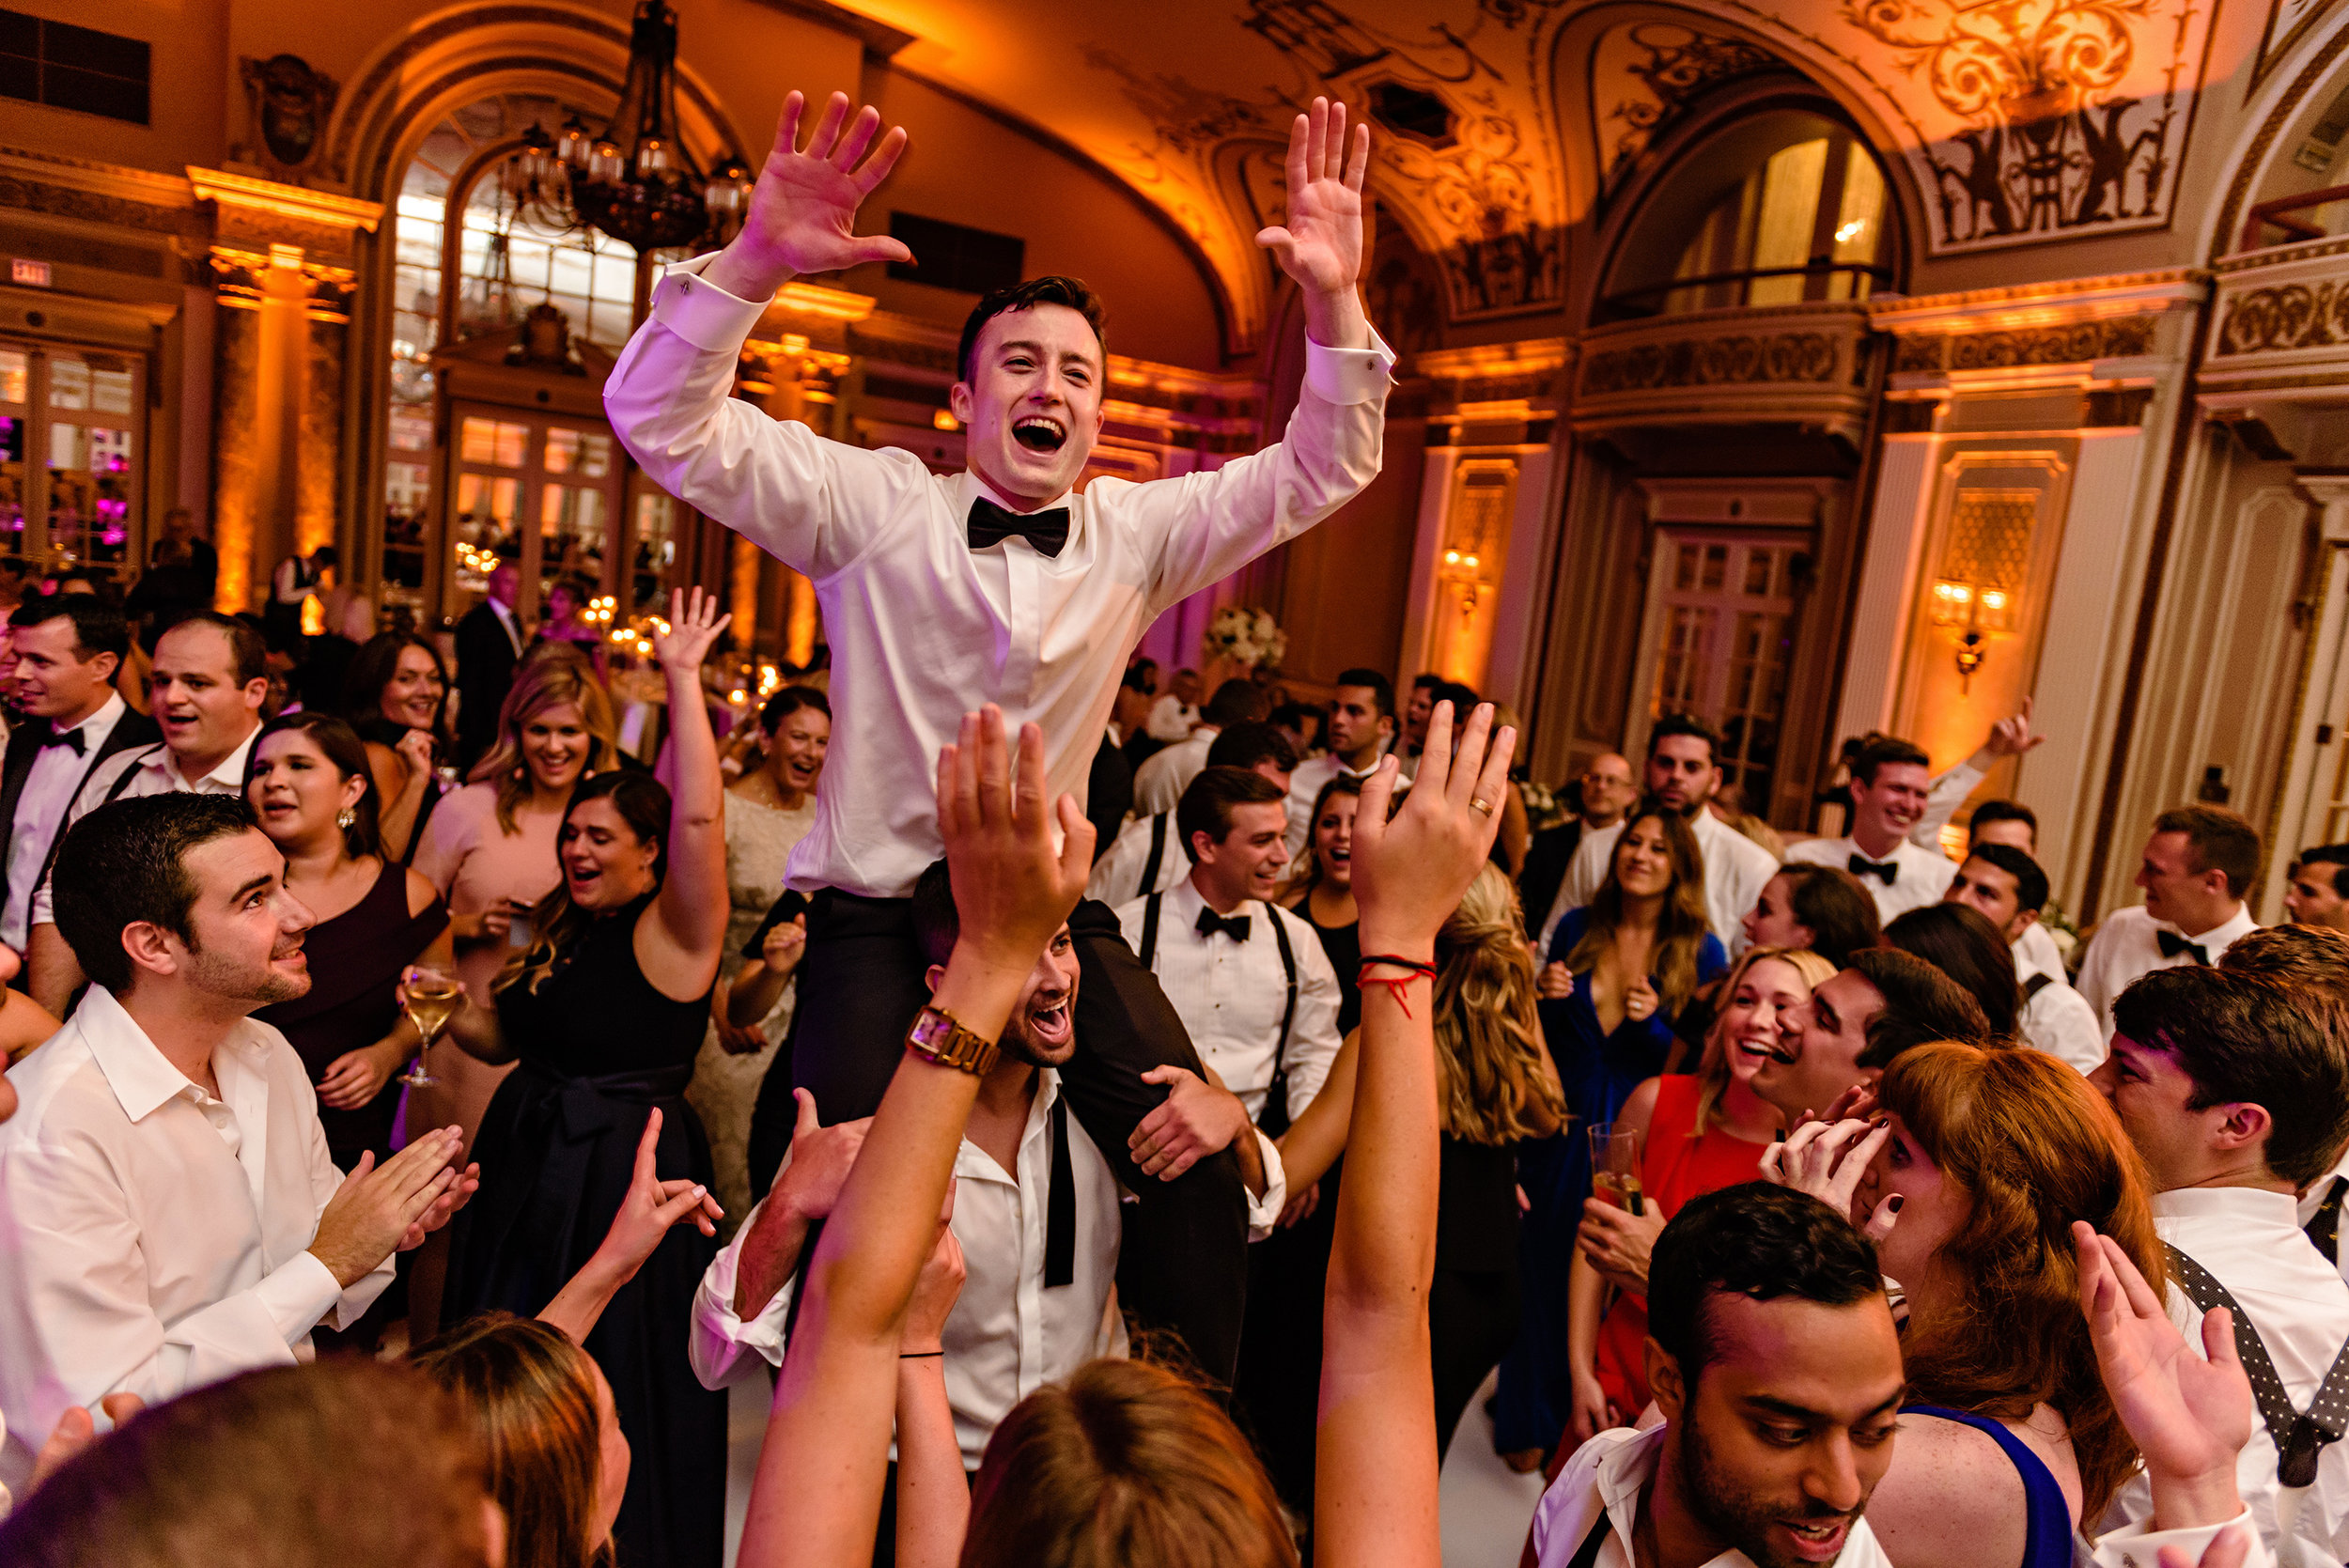 groom-being-lifted-up-during-a-horah-dance-during-a-wedding-reception-at-a-fairmont-chateau-laurier-in-ottawa.jpg